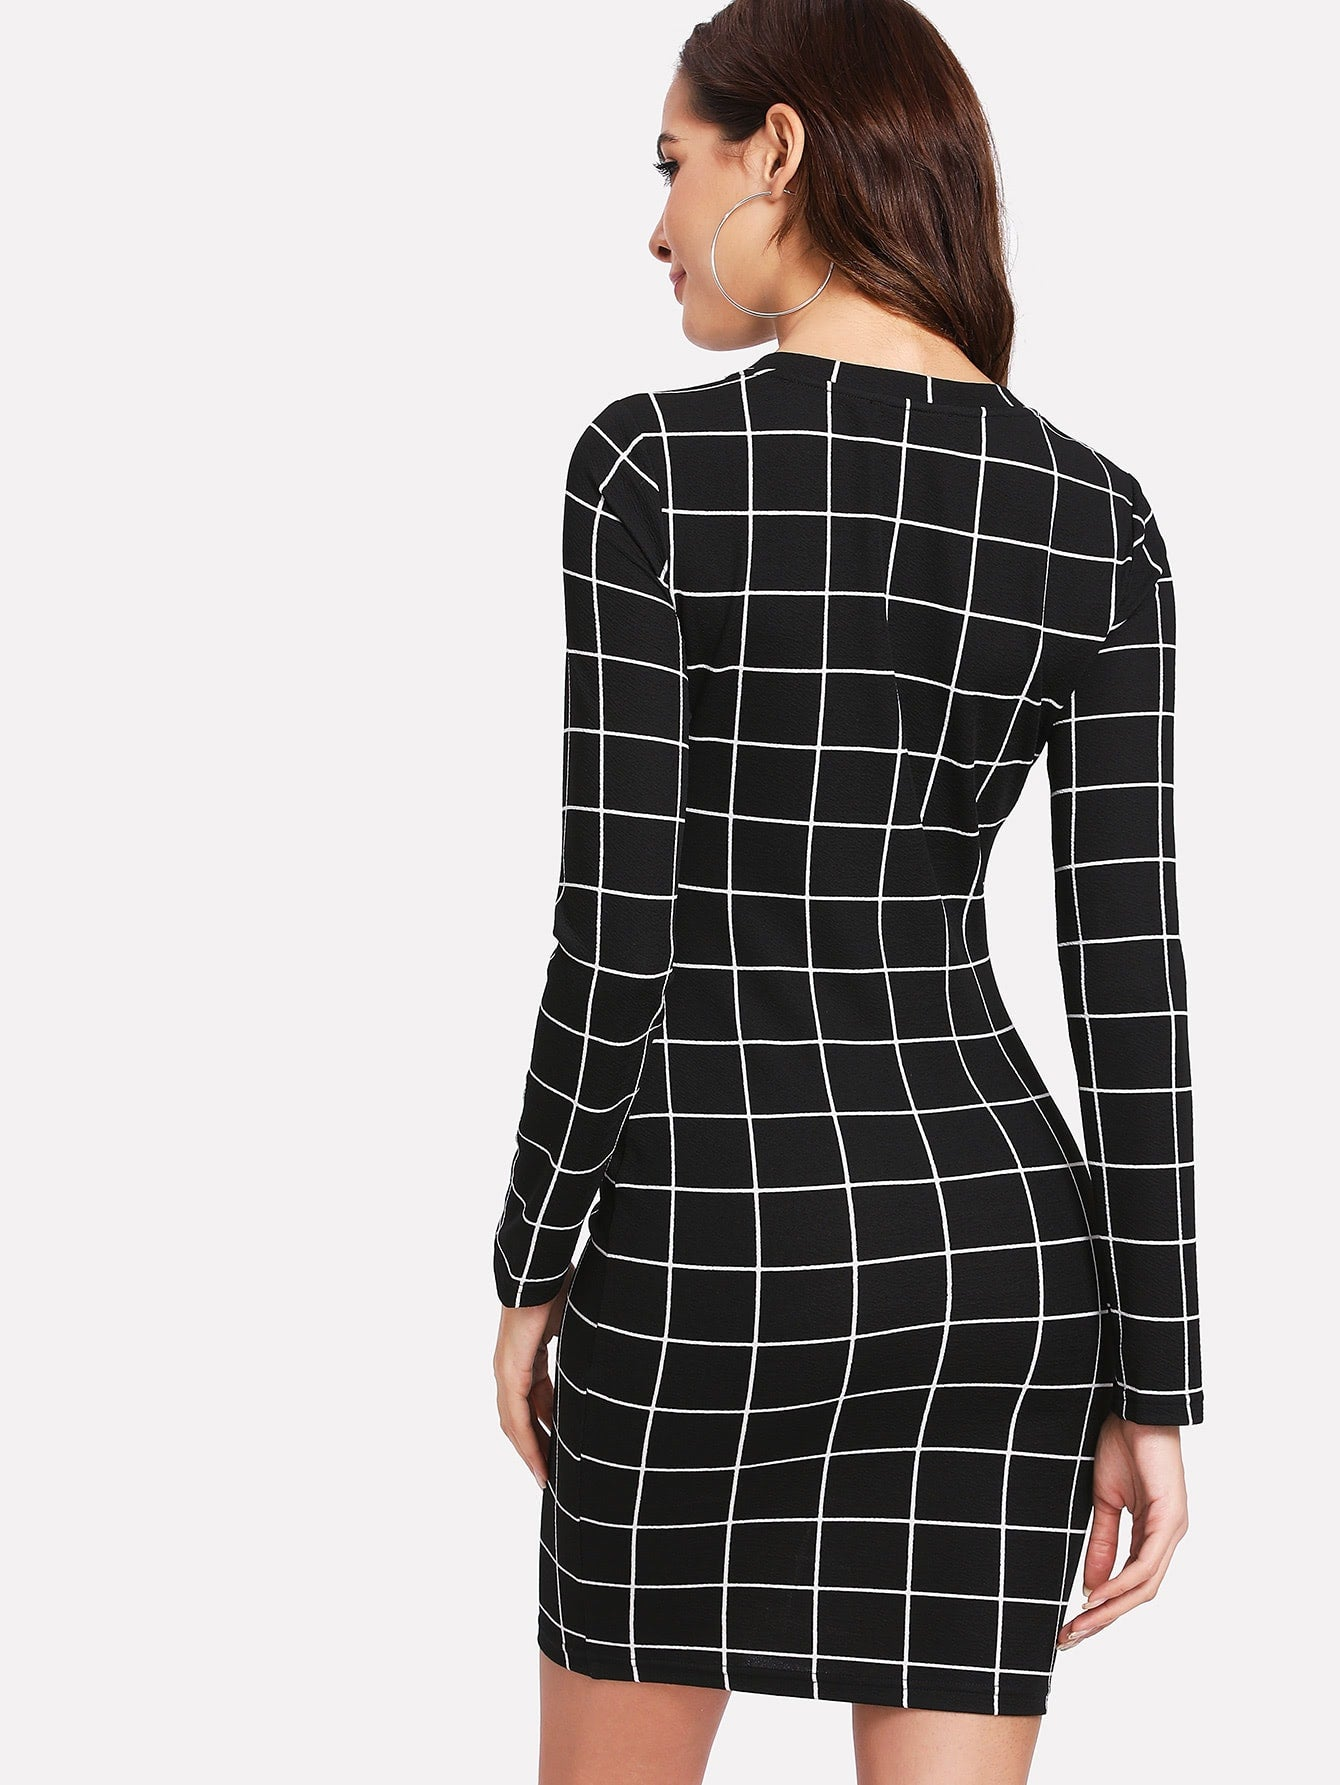 Black Plaid Long Sleeve Bodycon Mini Dress | Mini Dress | SHEIN | Joan & Vern's Apparel